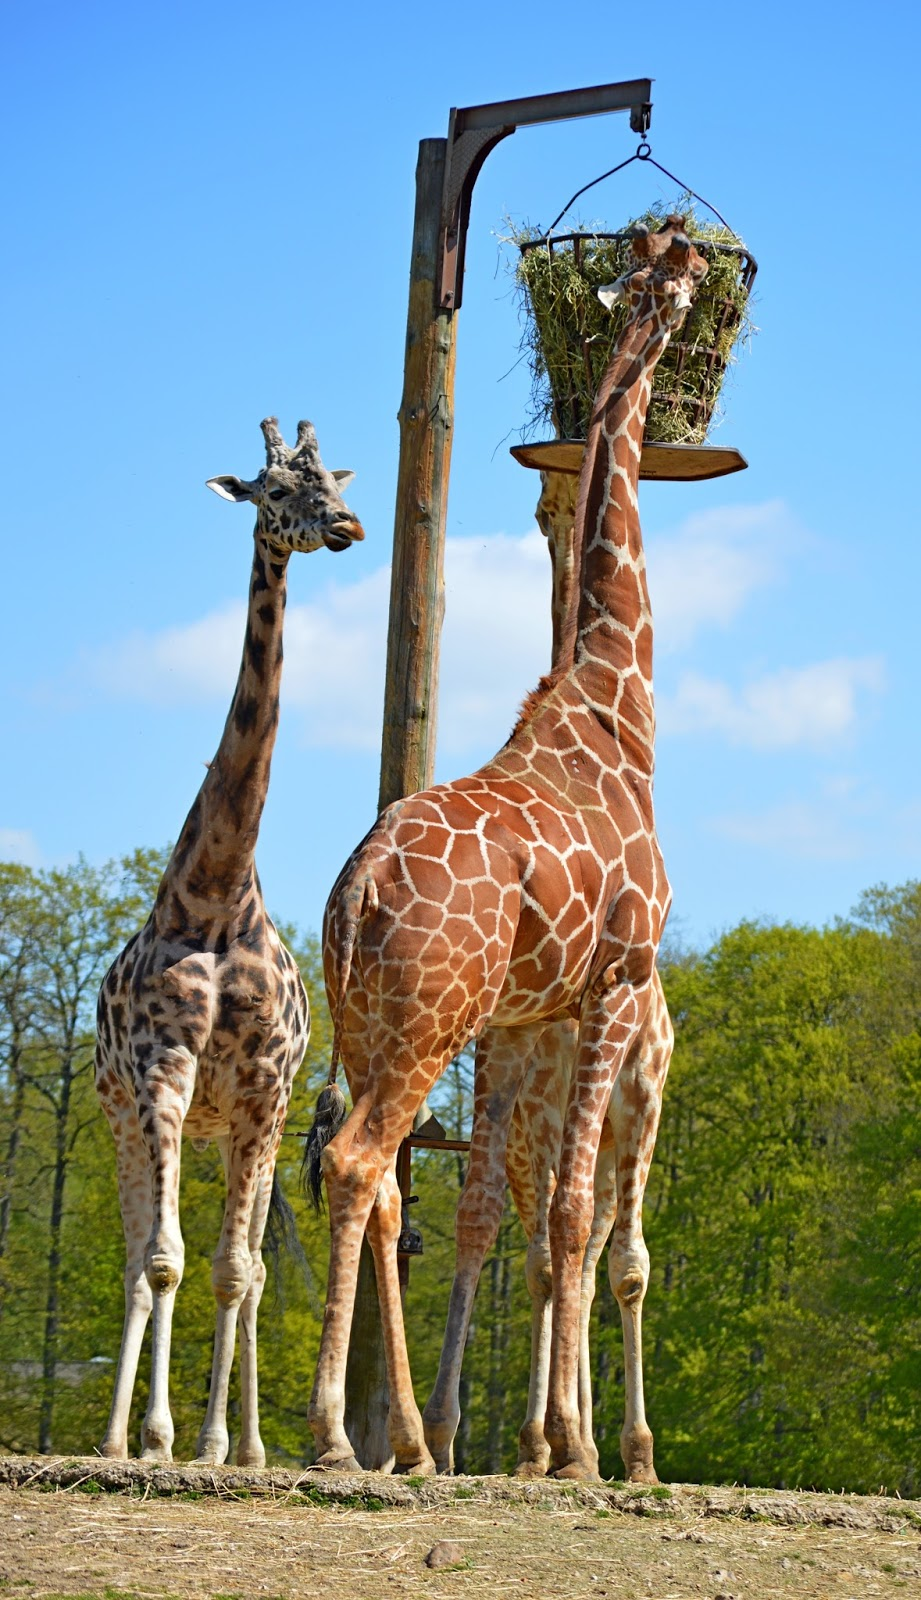 Picture of giraffes feeding.